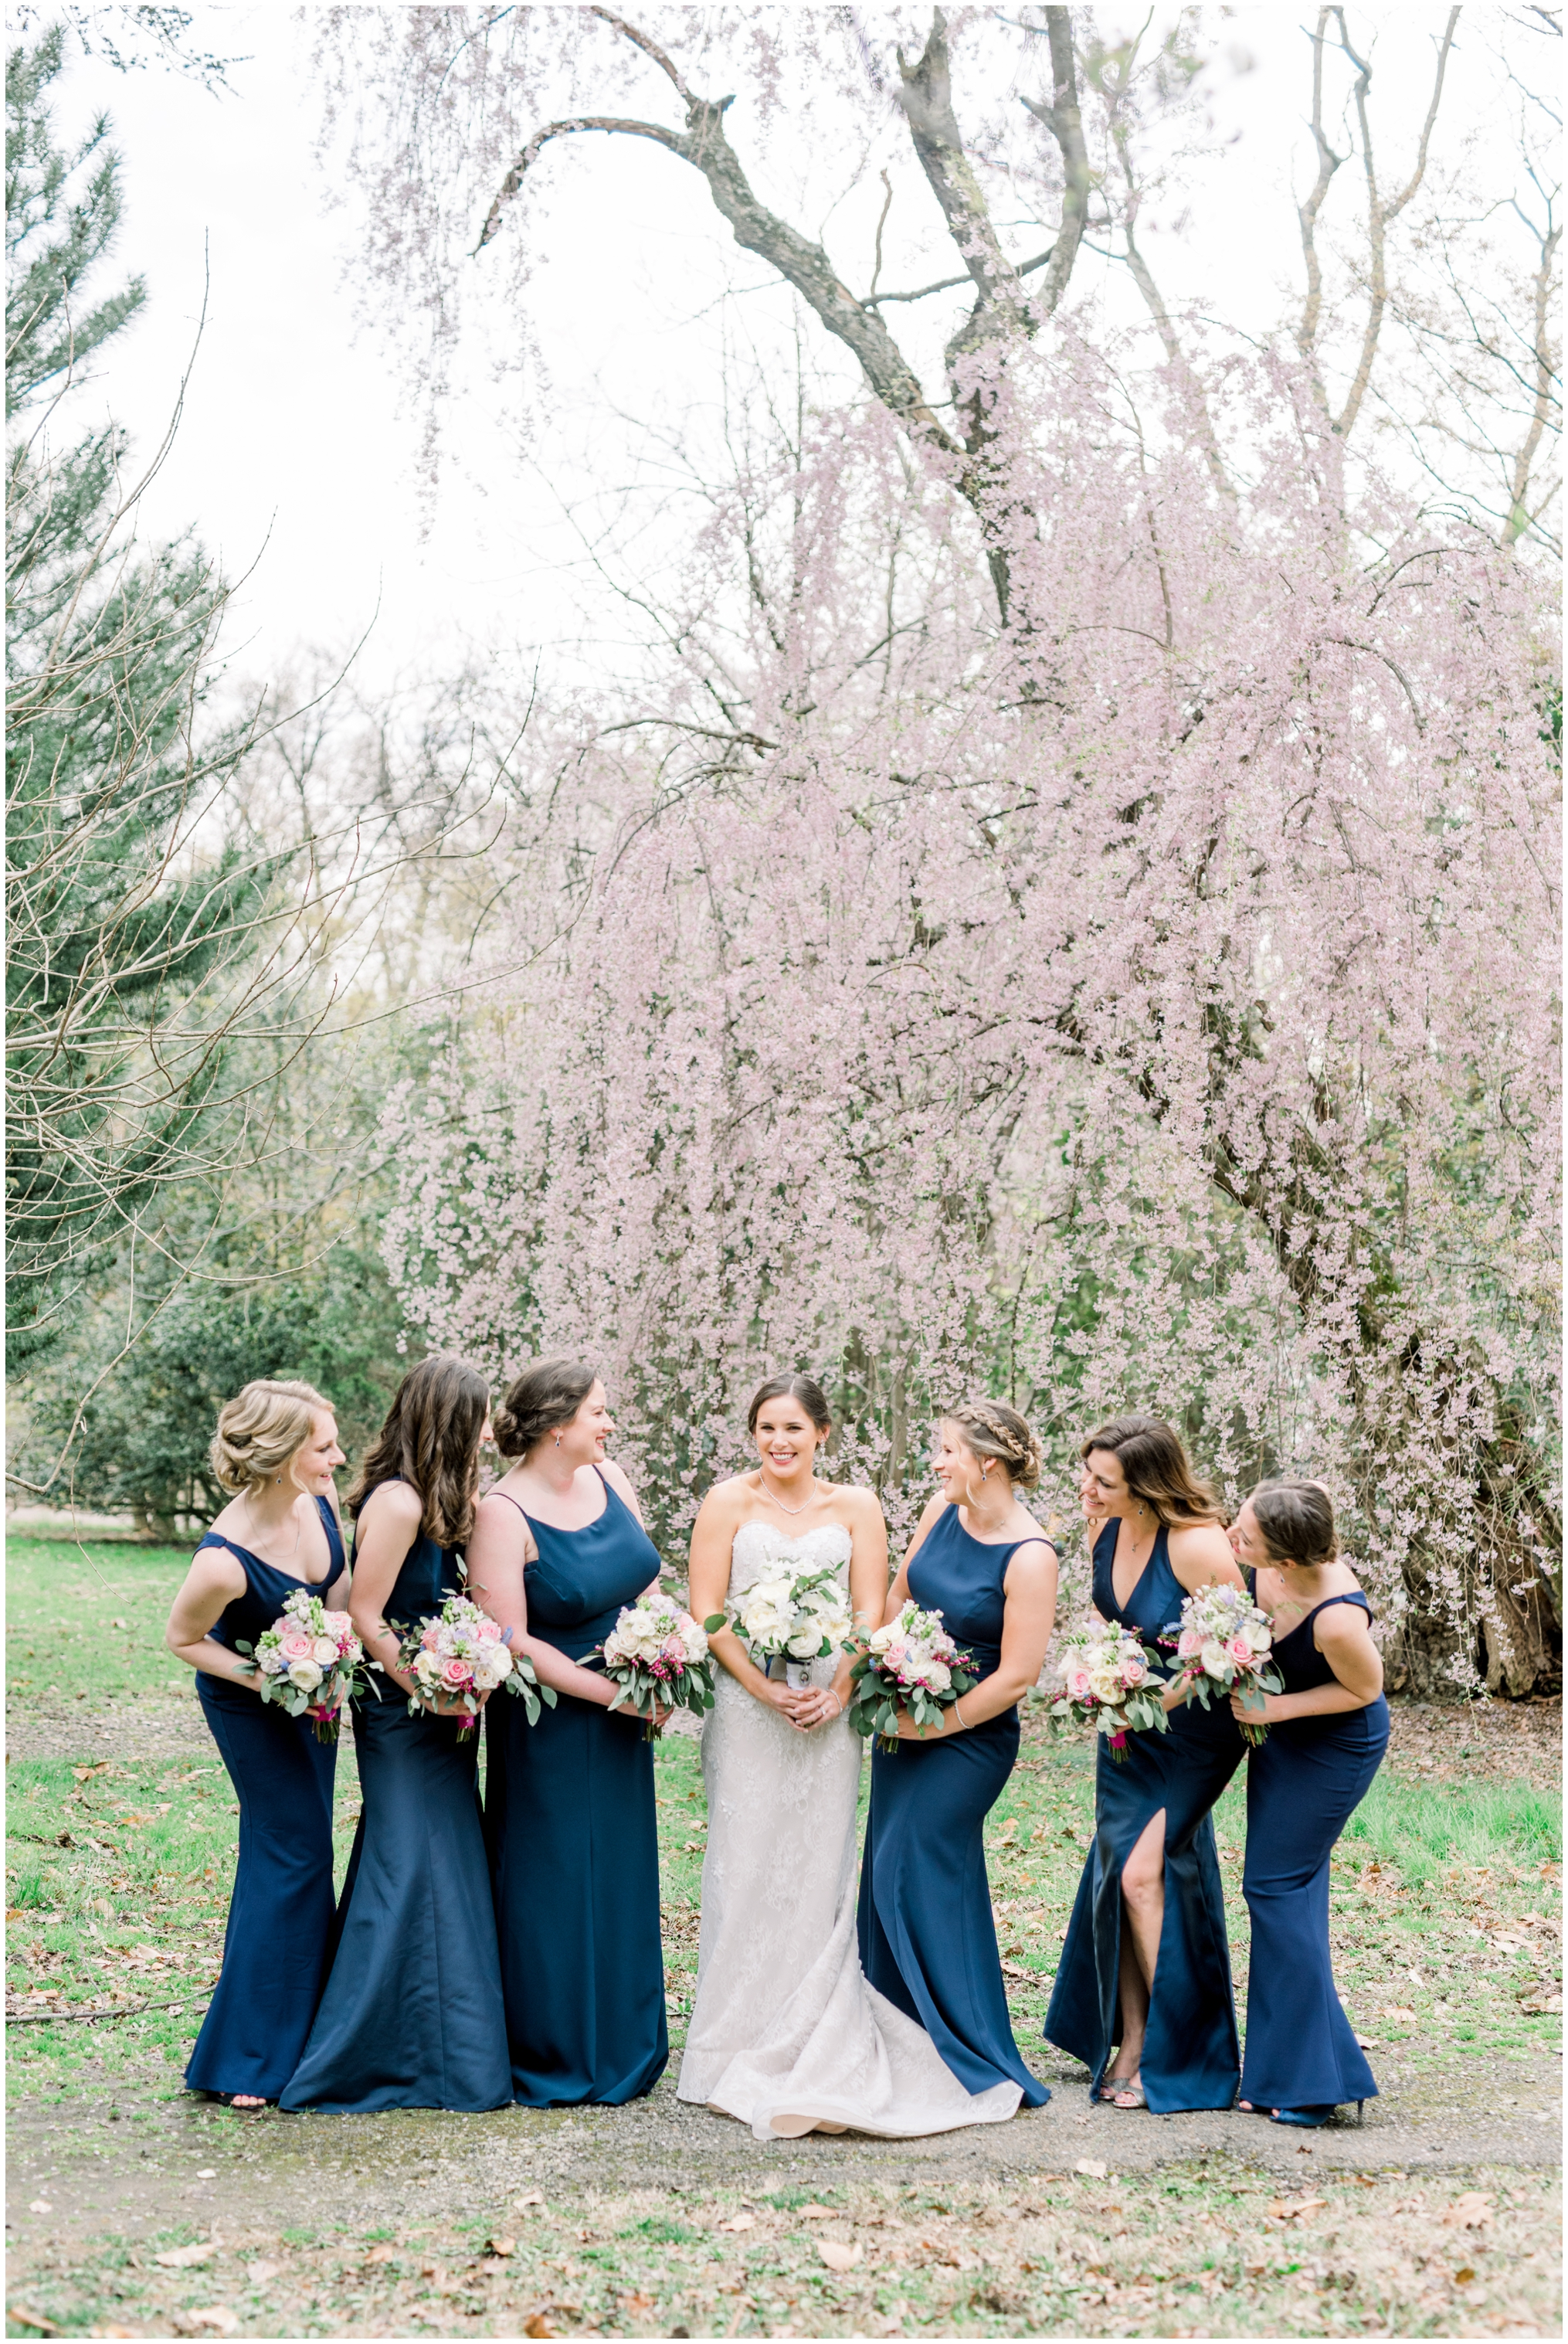 Krista Brackin Photography | April Wedding at The Carriage House at Rockwood Park_0054.jpg